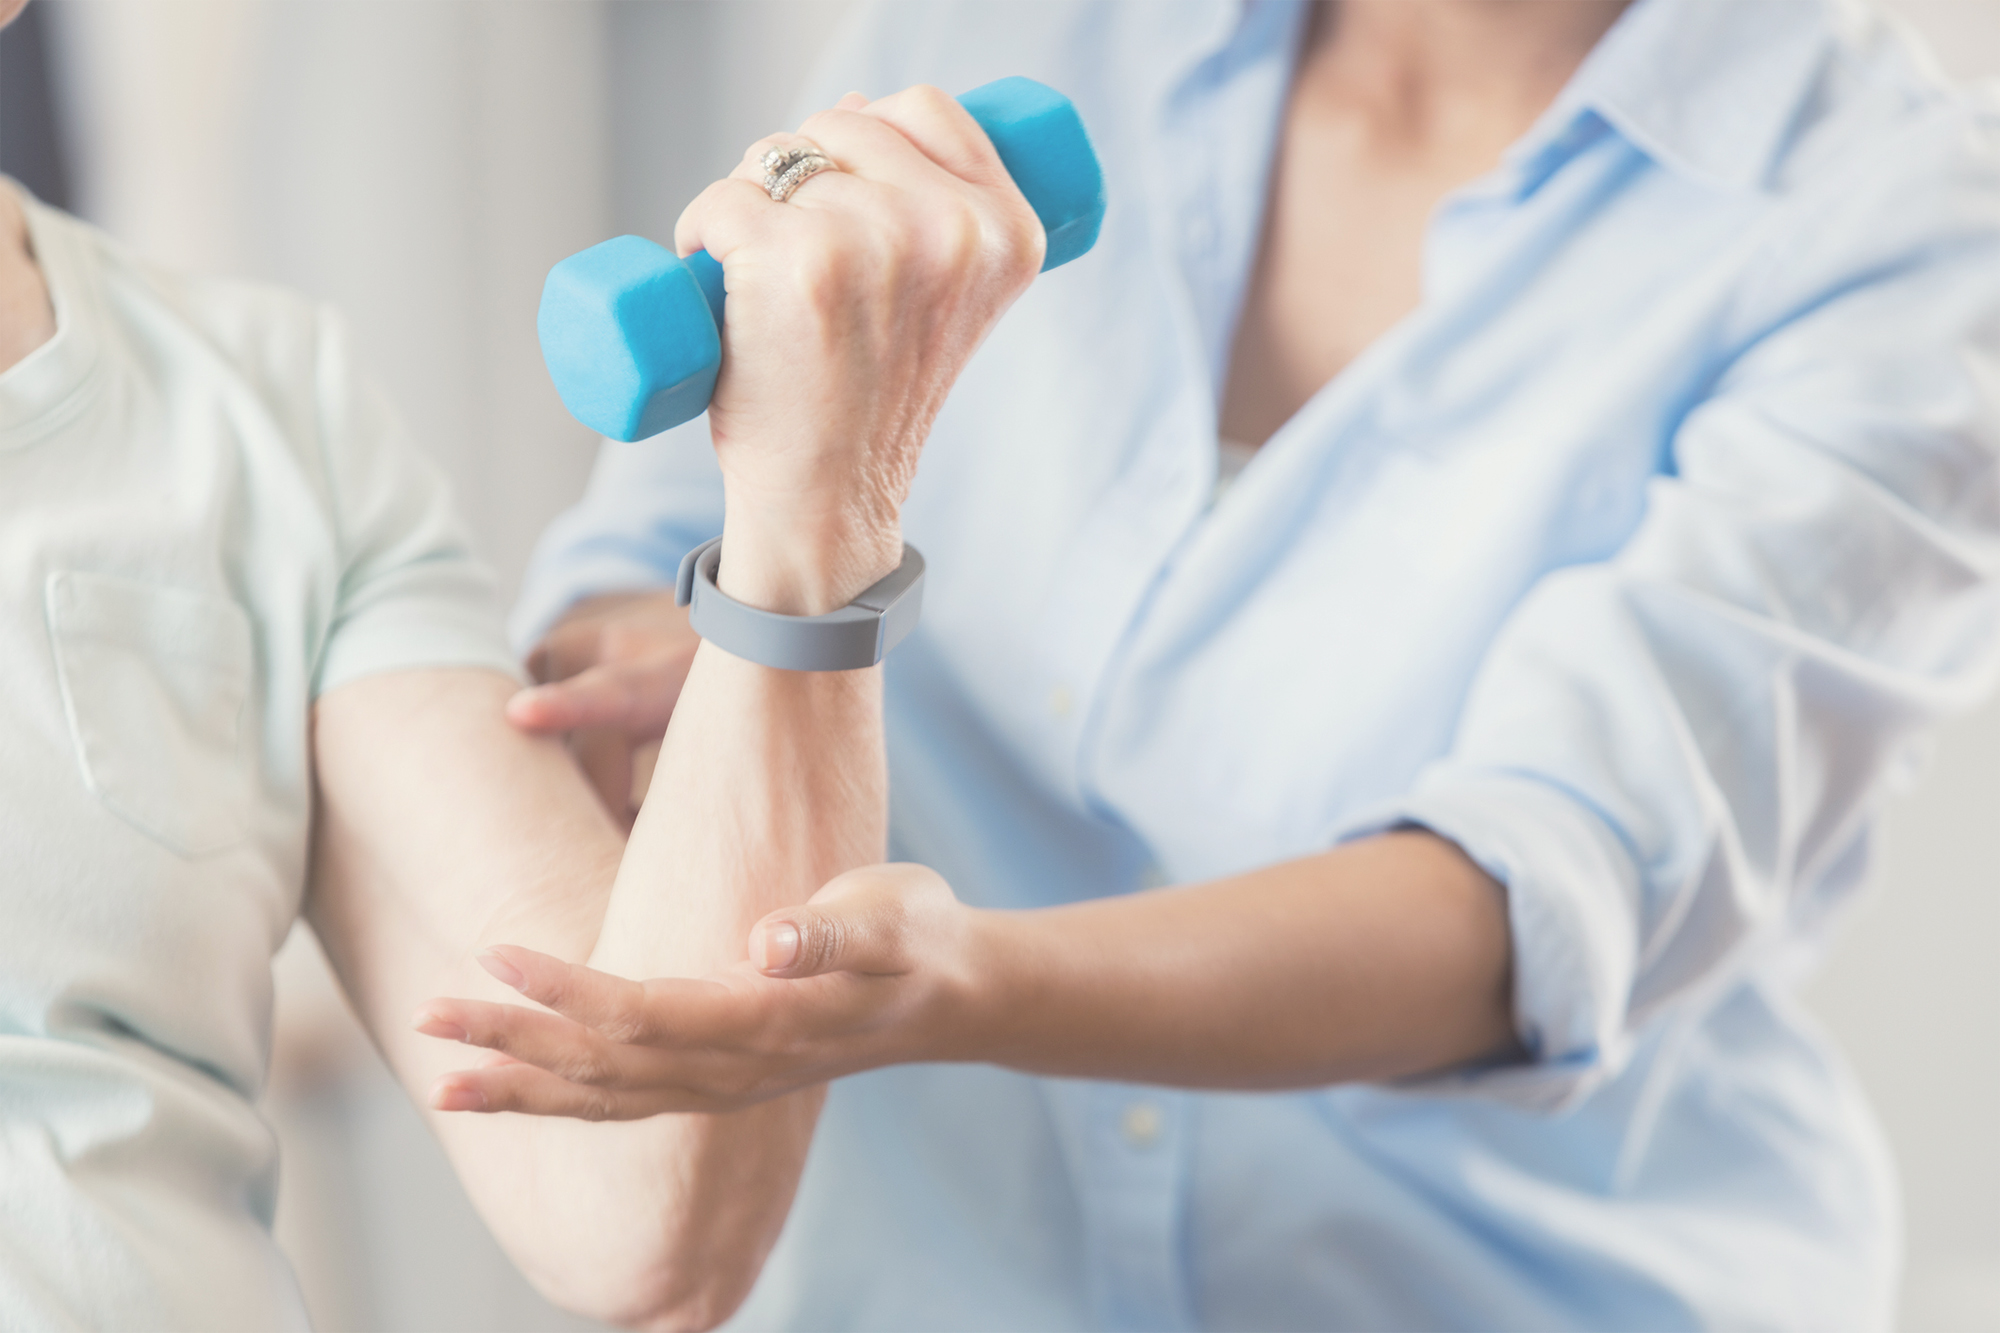 Unrecognizable uses blue hand weight during physical therapy session